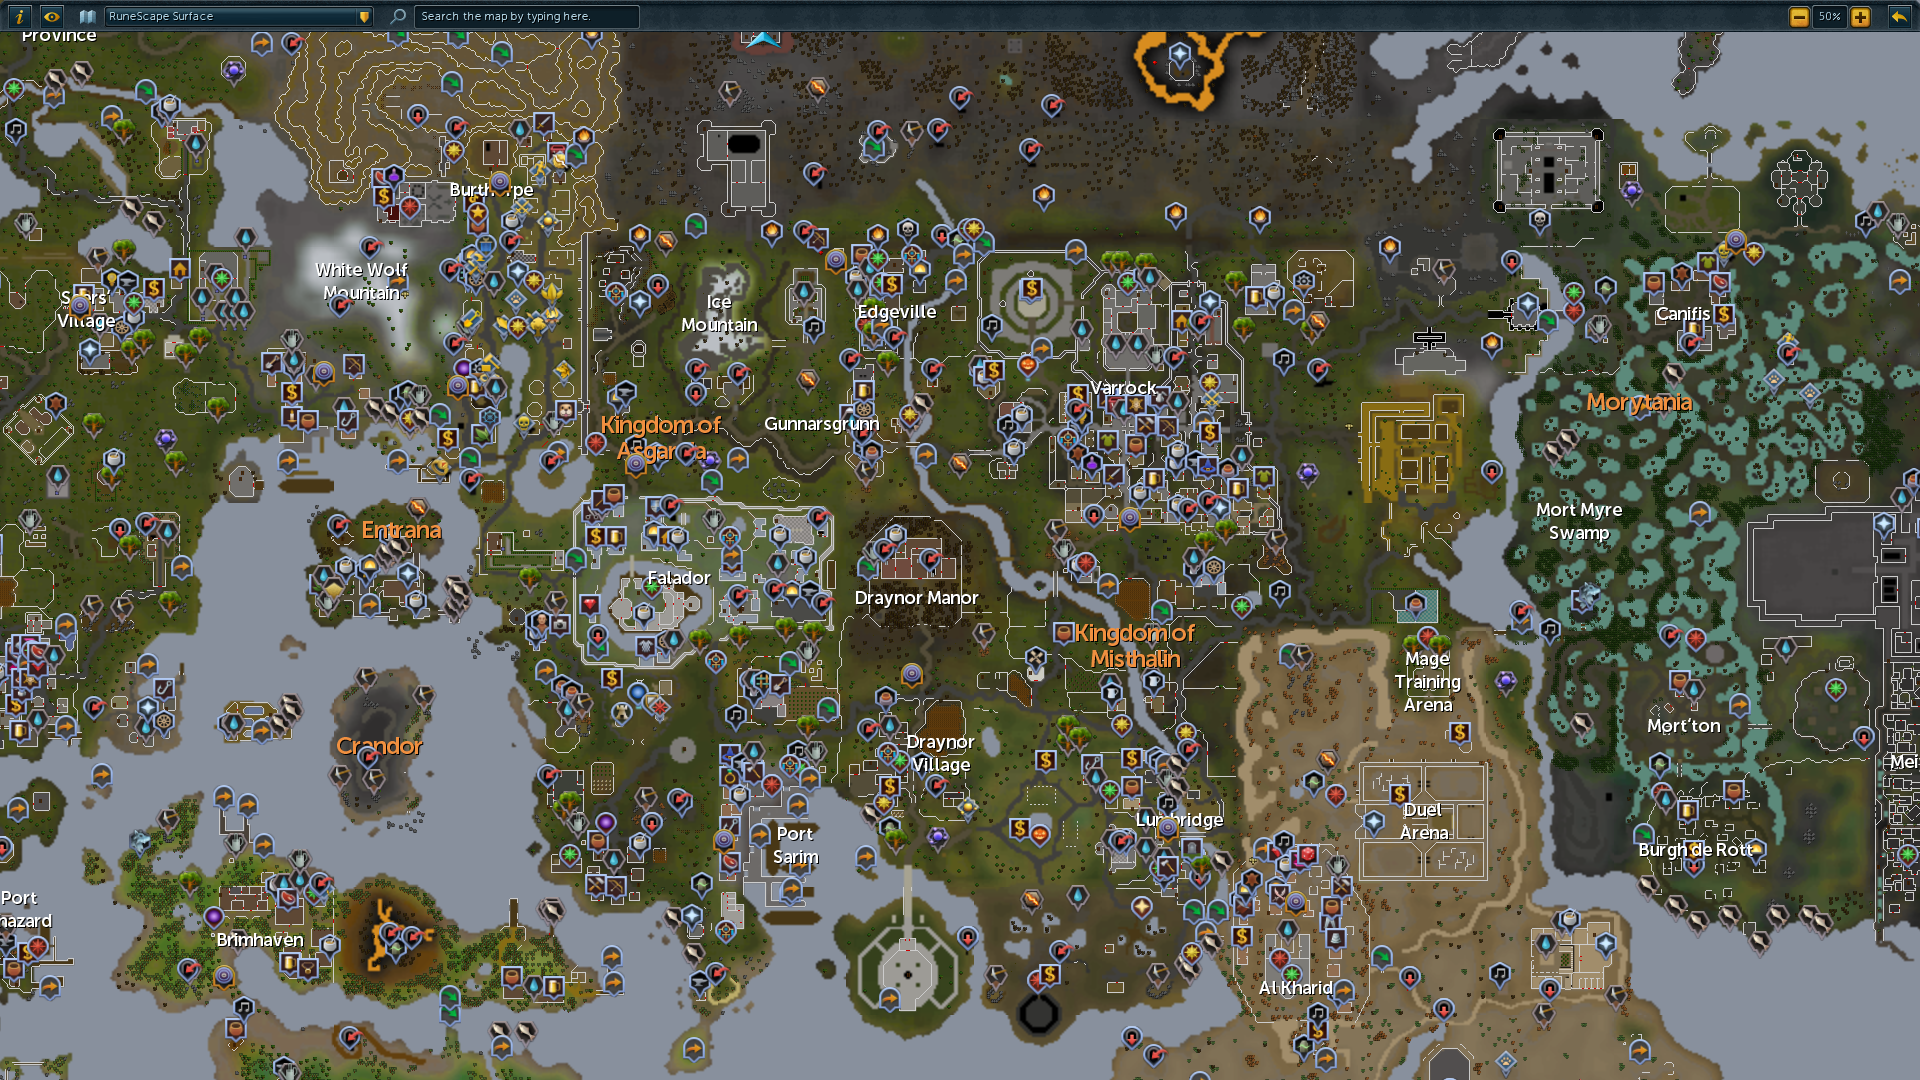 Runescape World Map 07.World Map Runescape Wiki Fandom Powered By Wikia